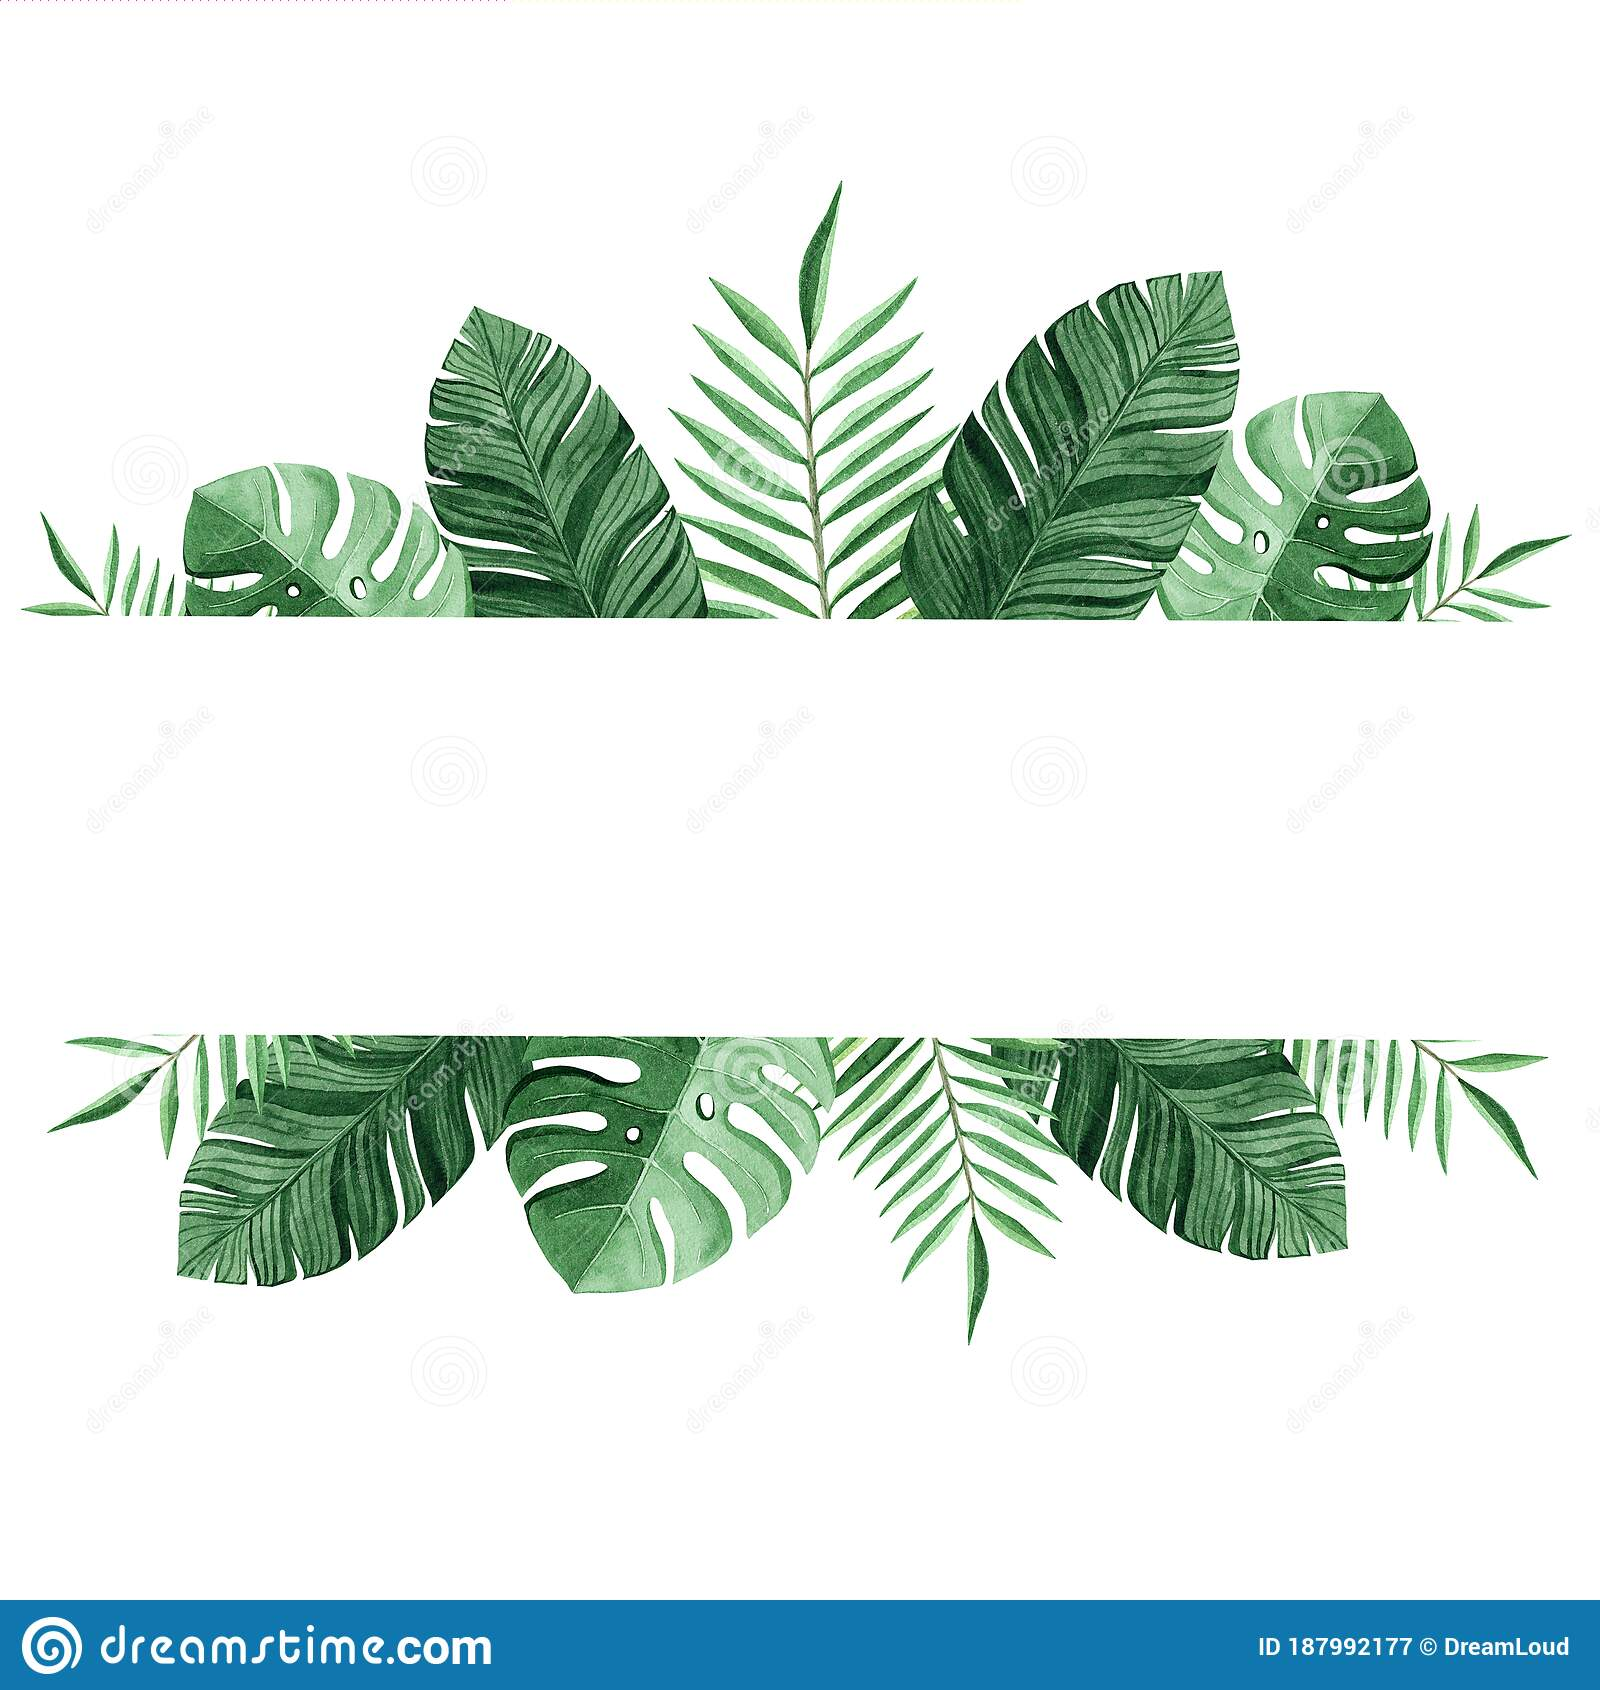 Watercolor Green Tropical Border Isolated On White Background Palm Leaves Banner Stock Illustration Illustration Of Branch Card 187992177 Palm tree tropical leaves border and frame background. dreamstime com